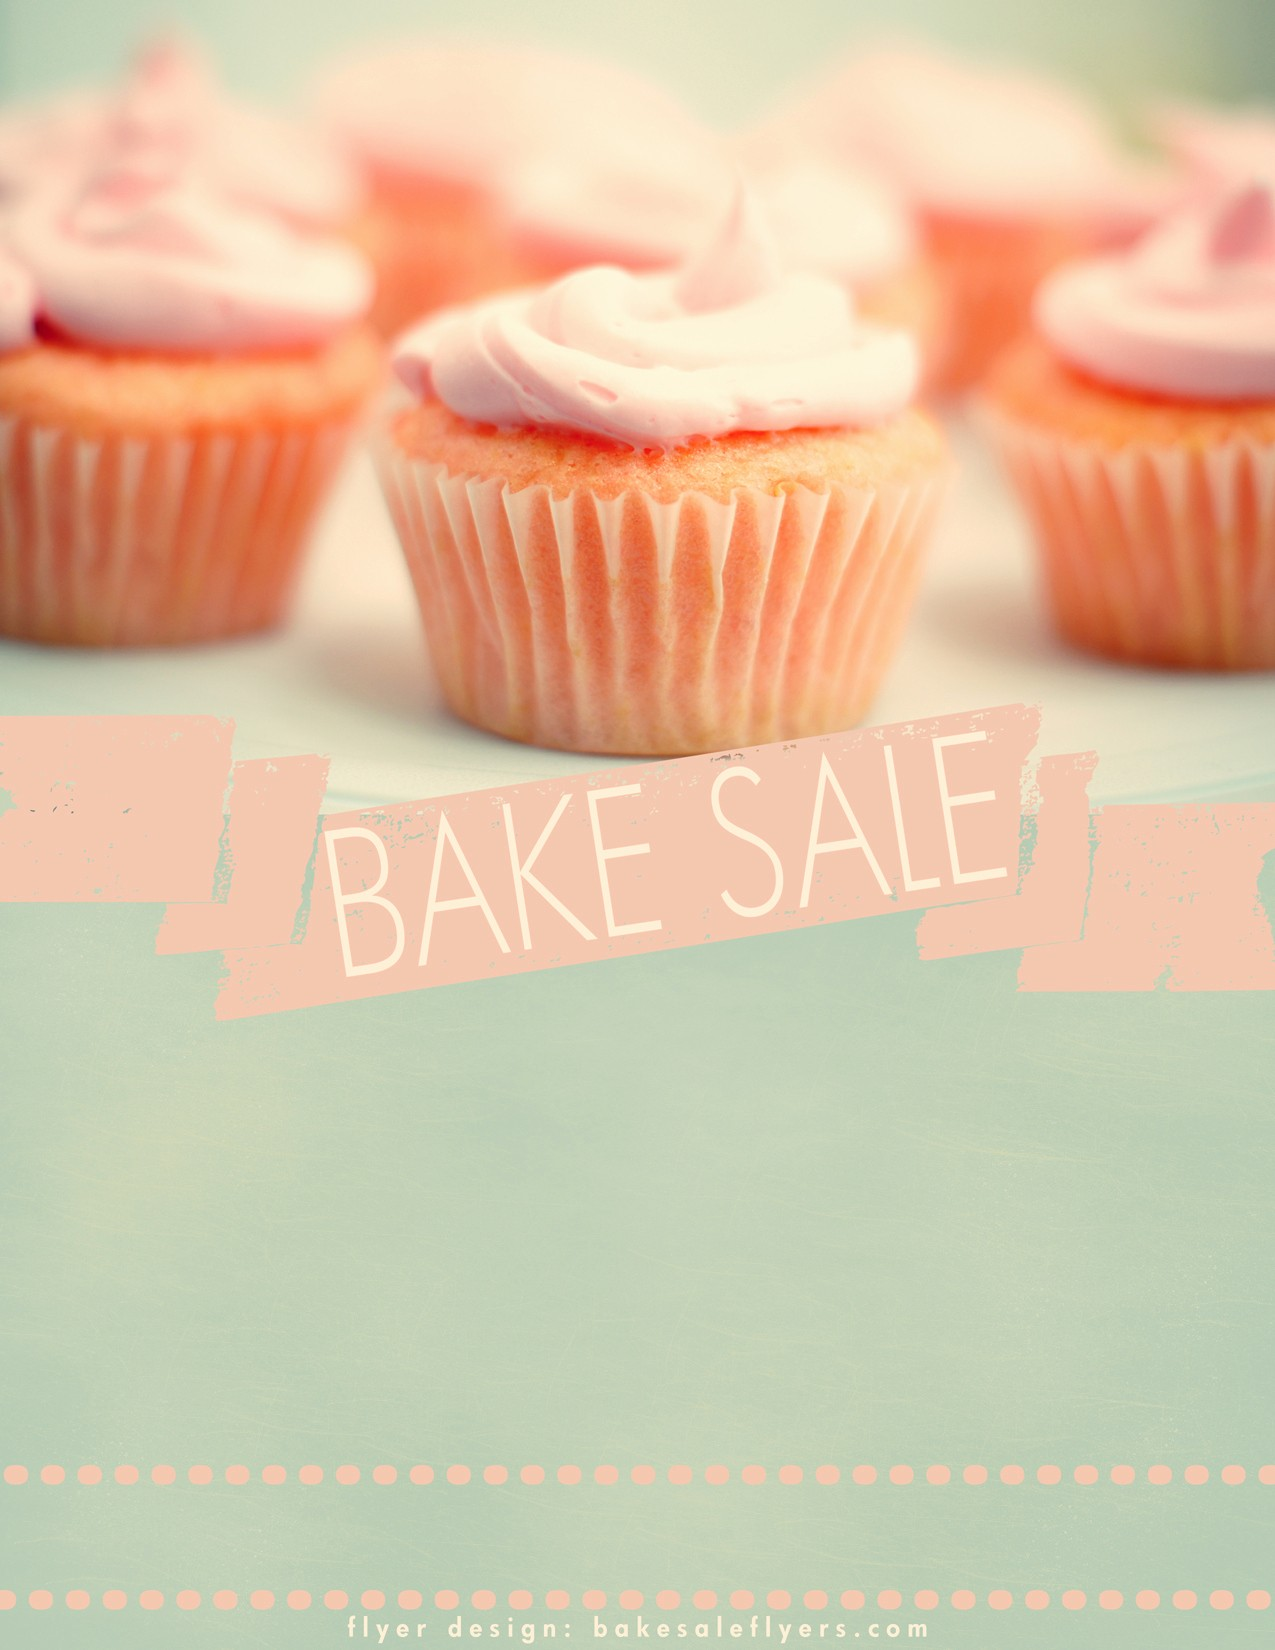 Bake Sale Flyer Template Free New Free Bake Sale Flyer Templates Yourweek 6ff45ceca25e